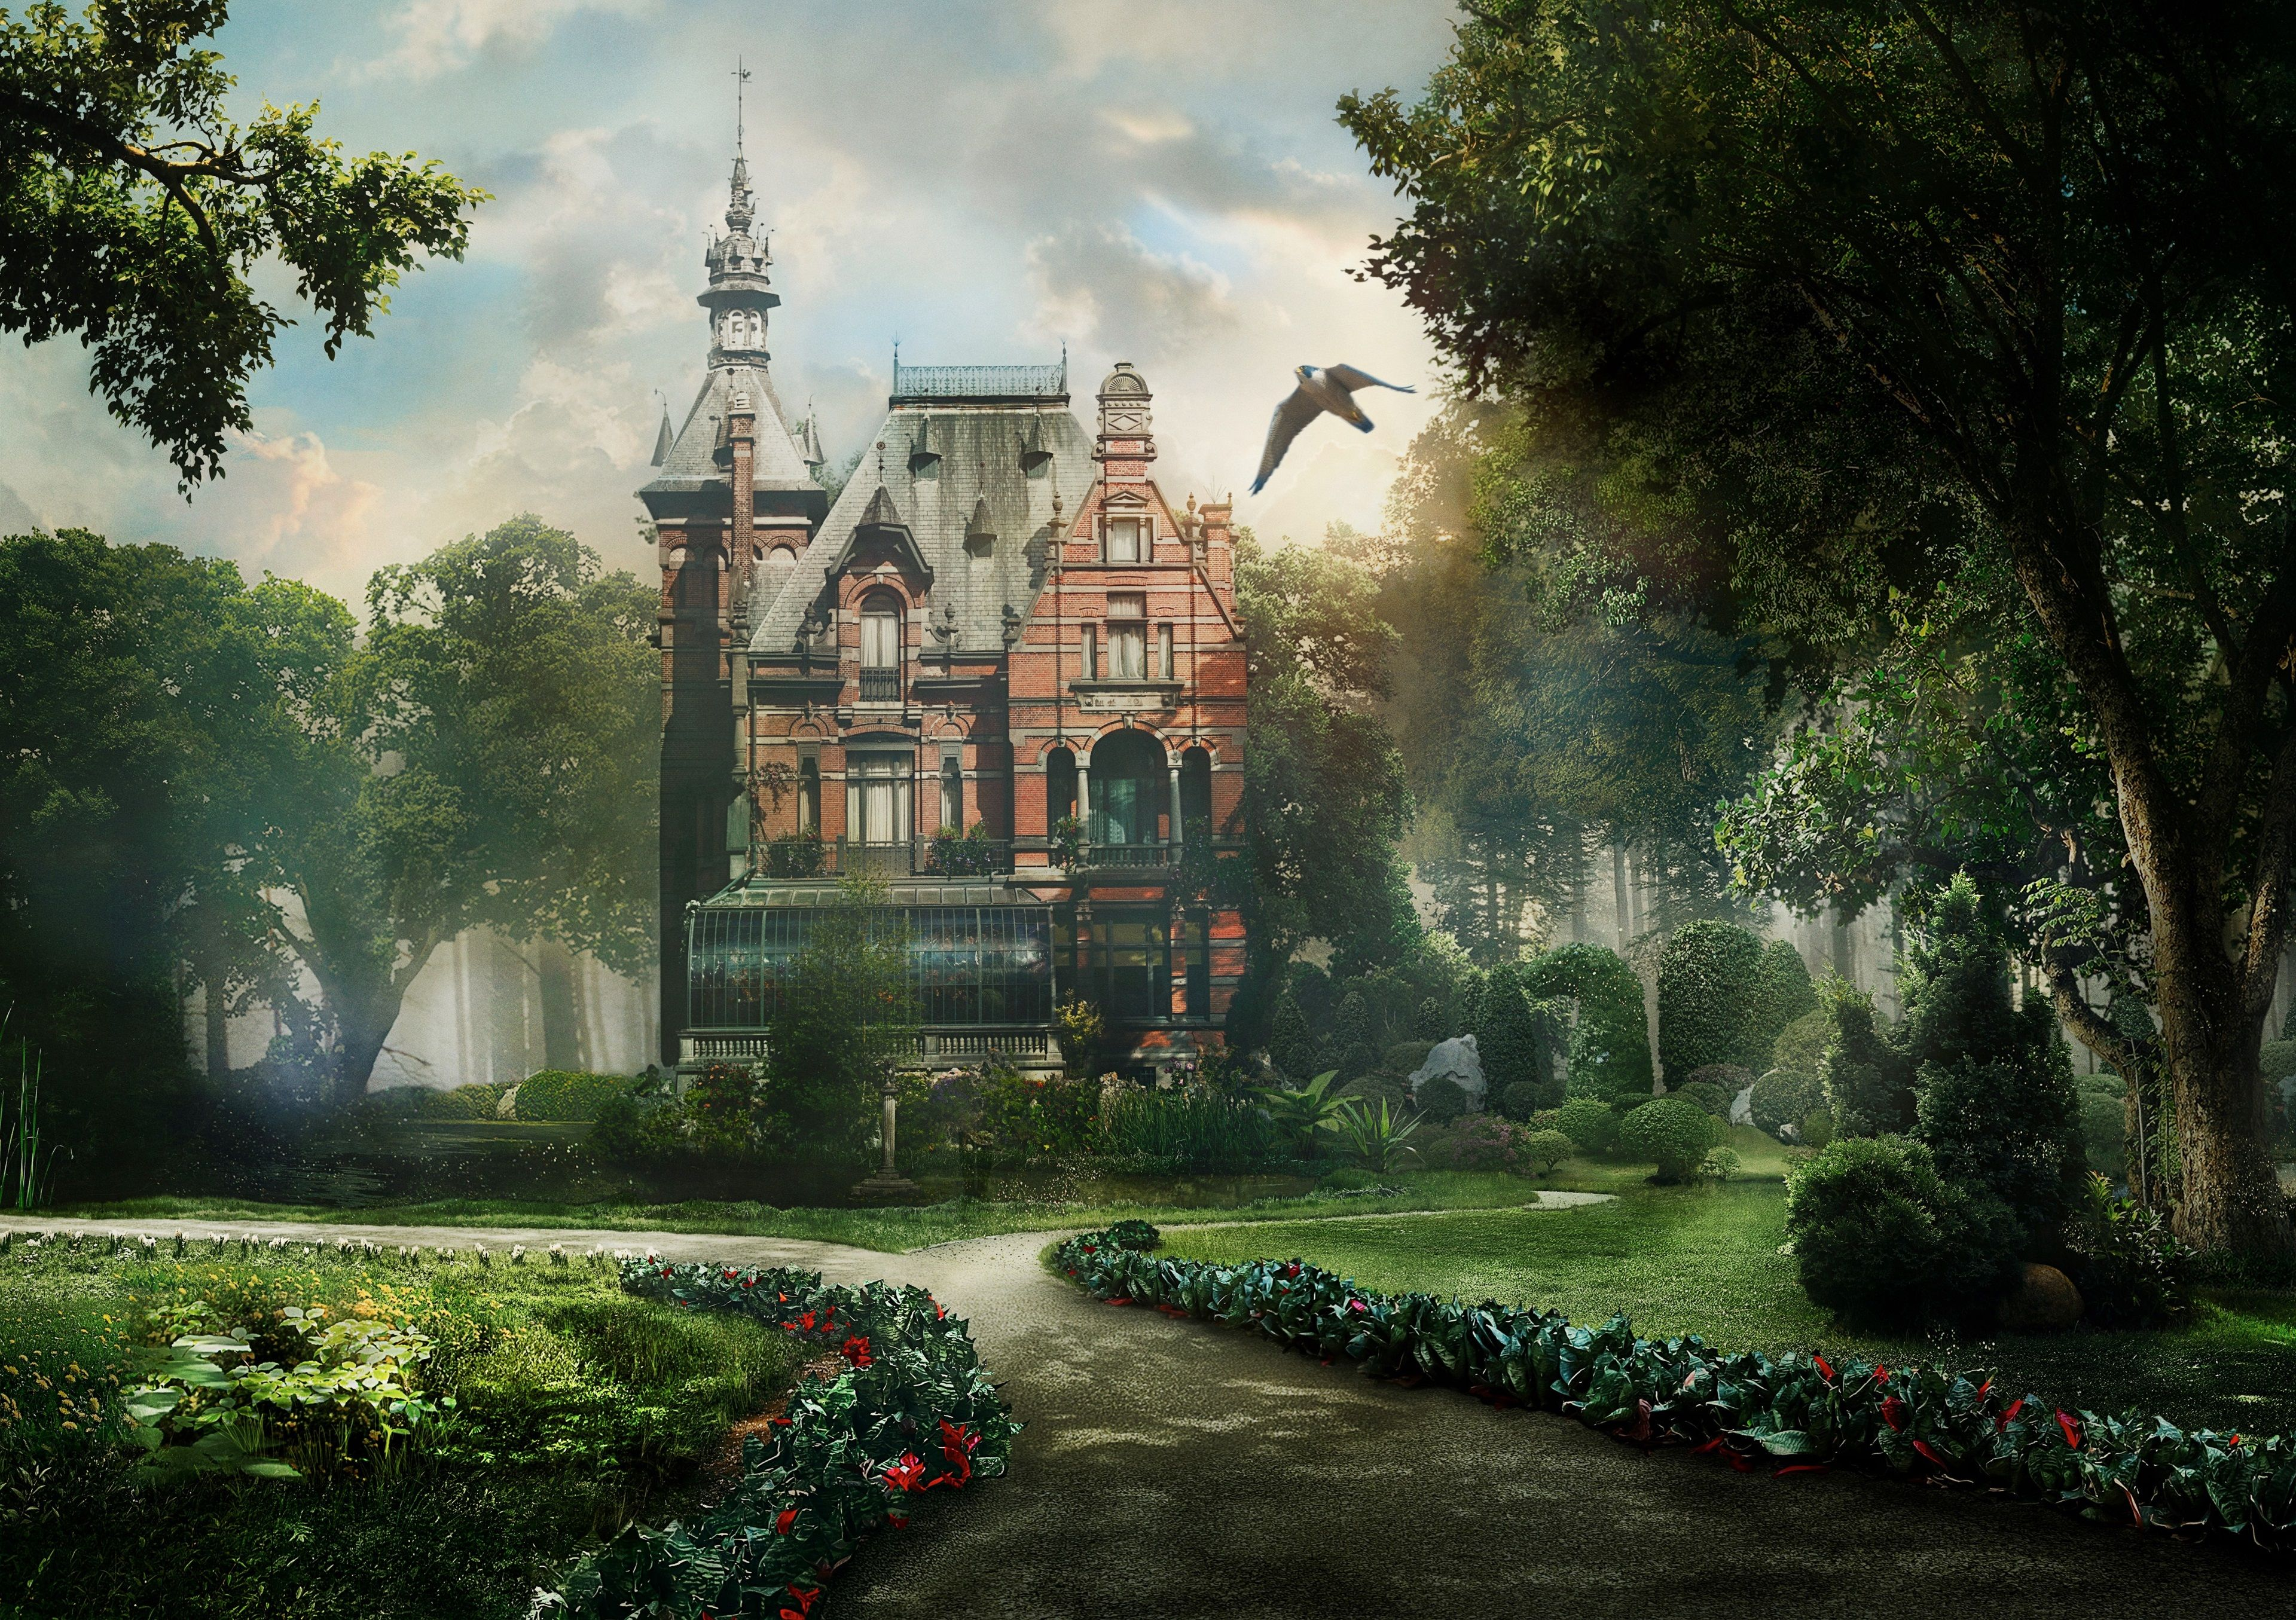 3840x2710 Miss Peregrines Home For Peculiar Children 4k Wallpaper